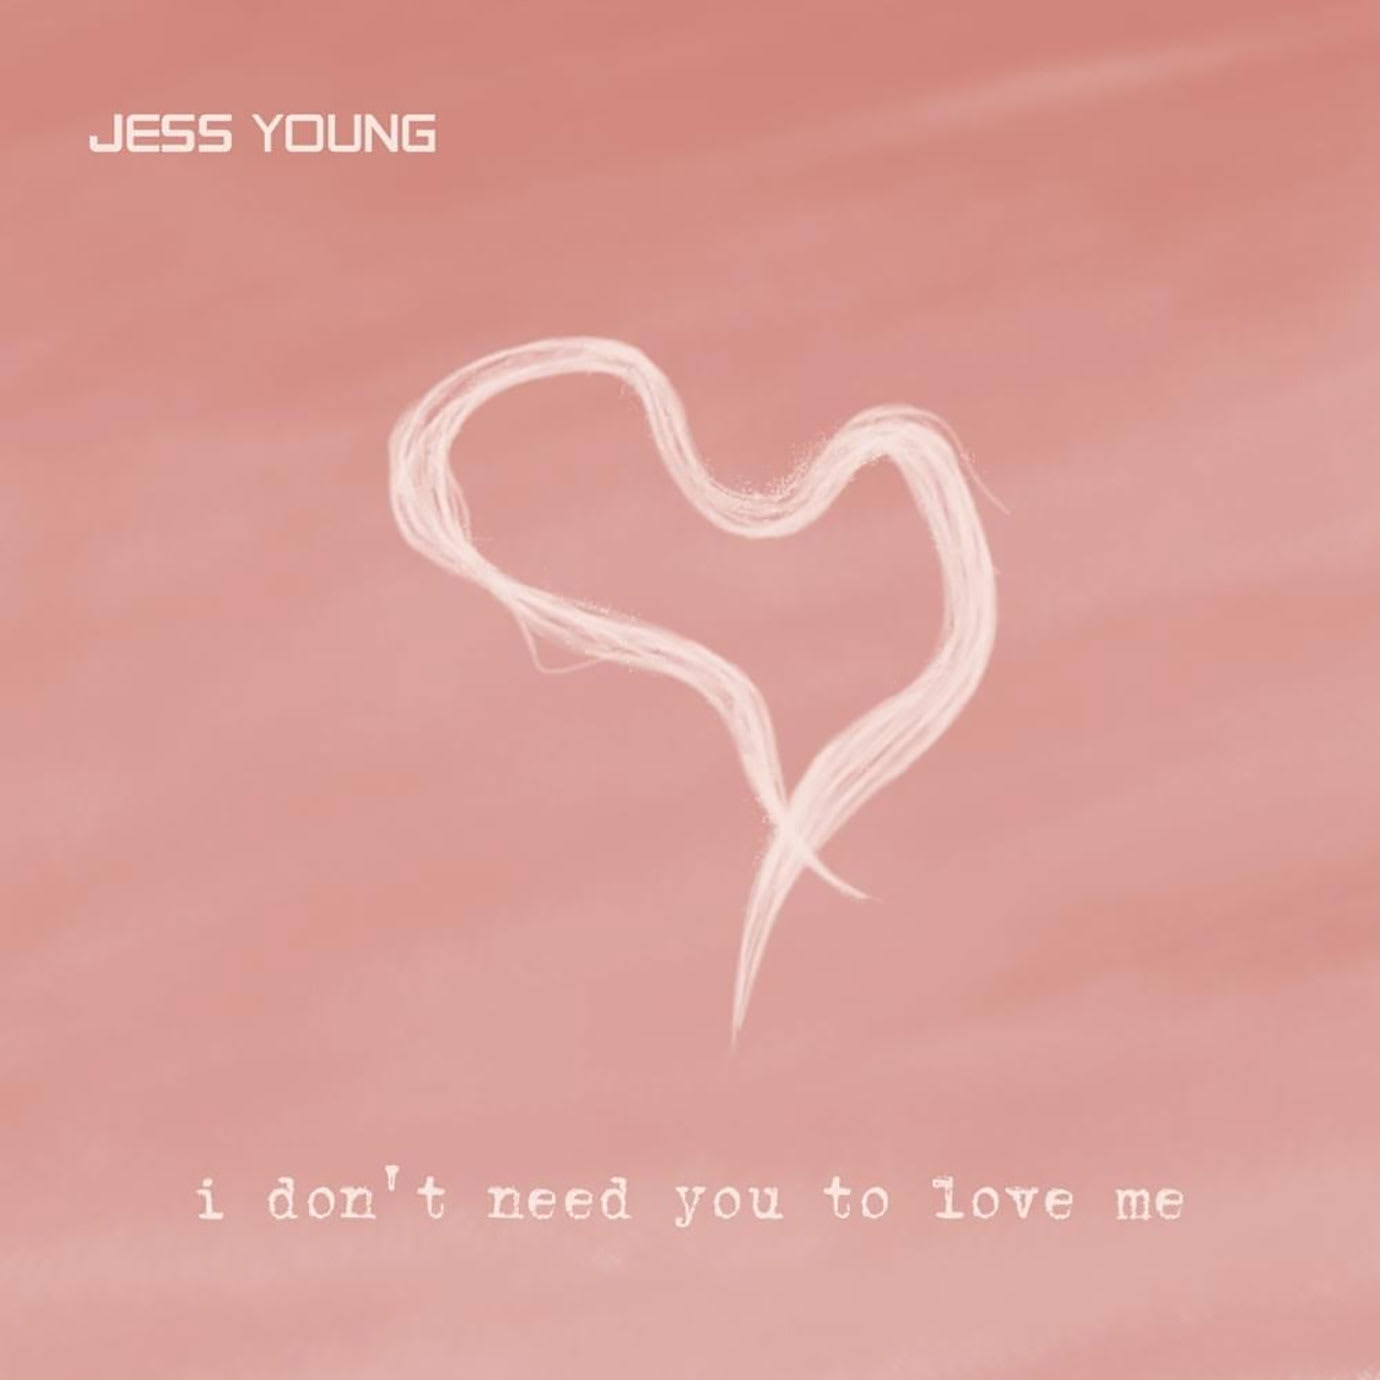 A pink album cover with a heart on it.